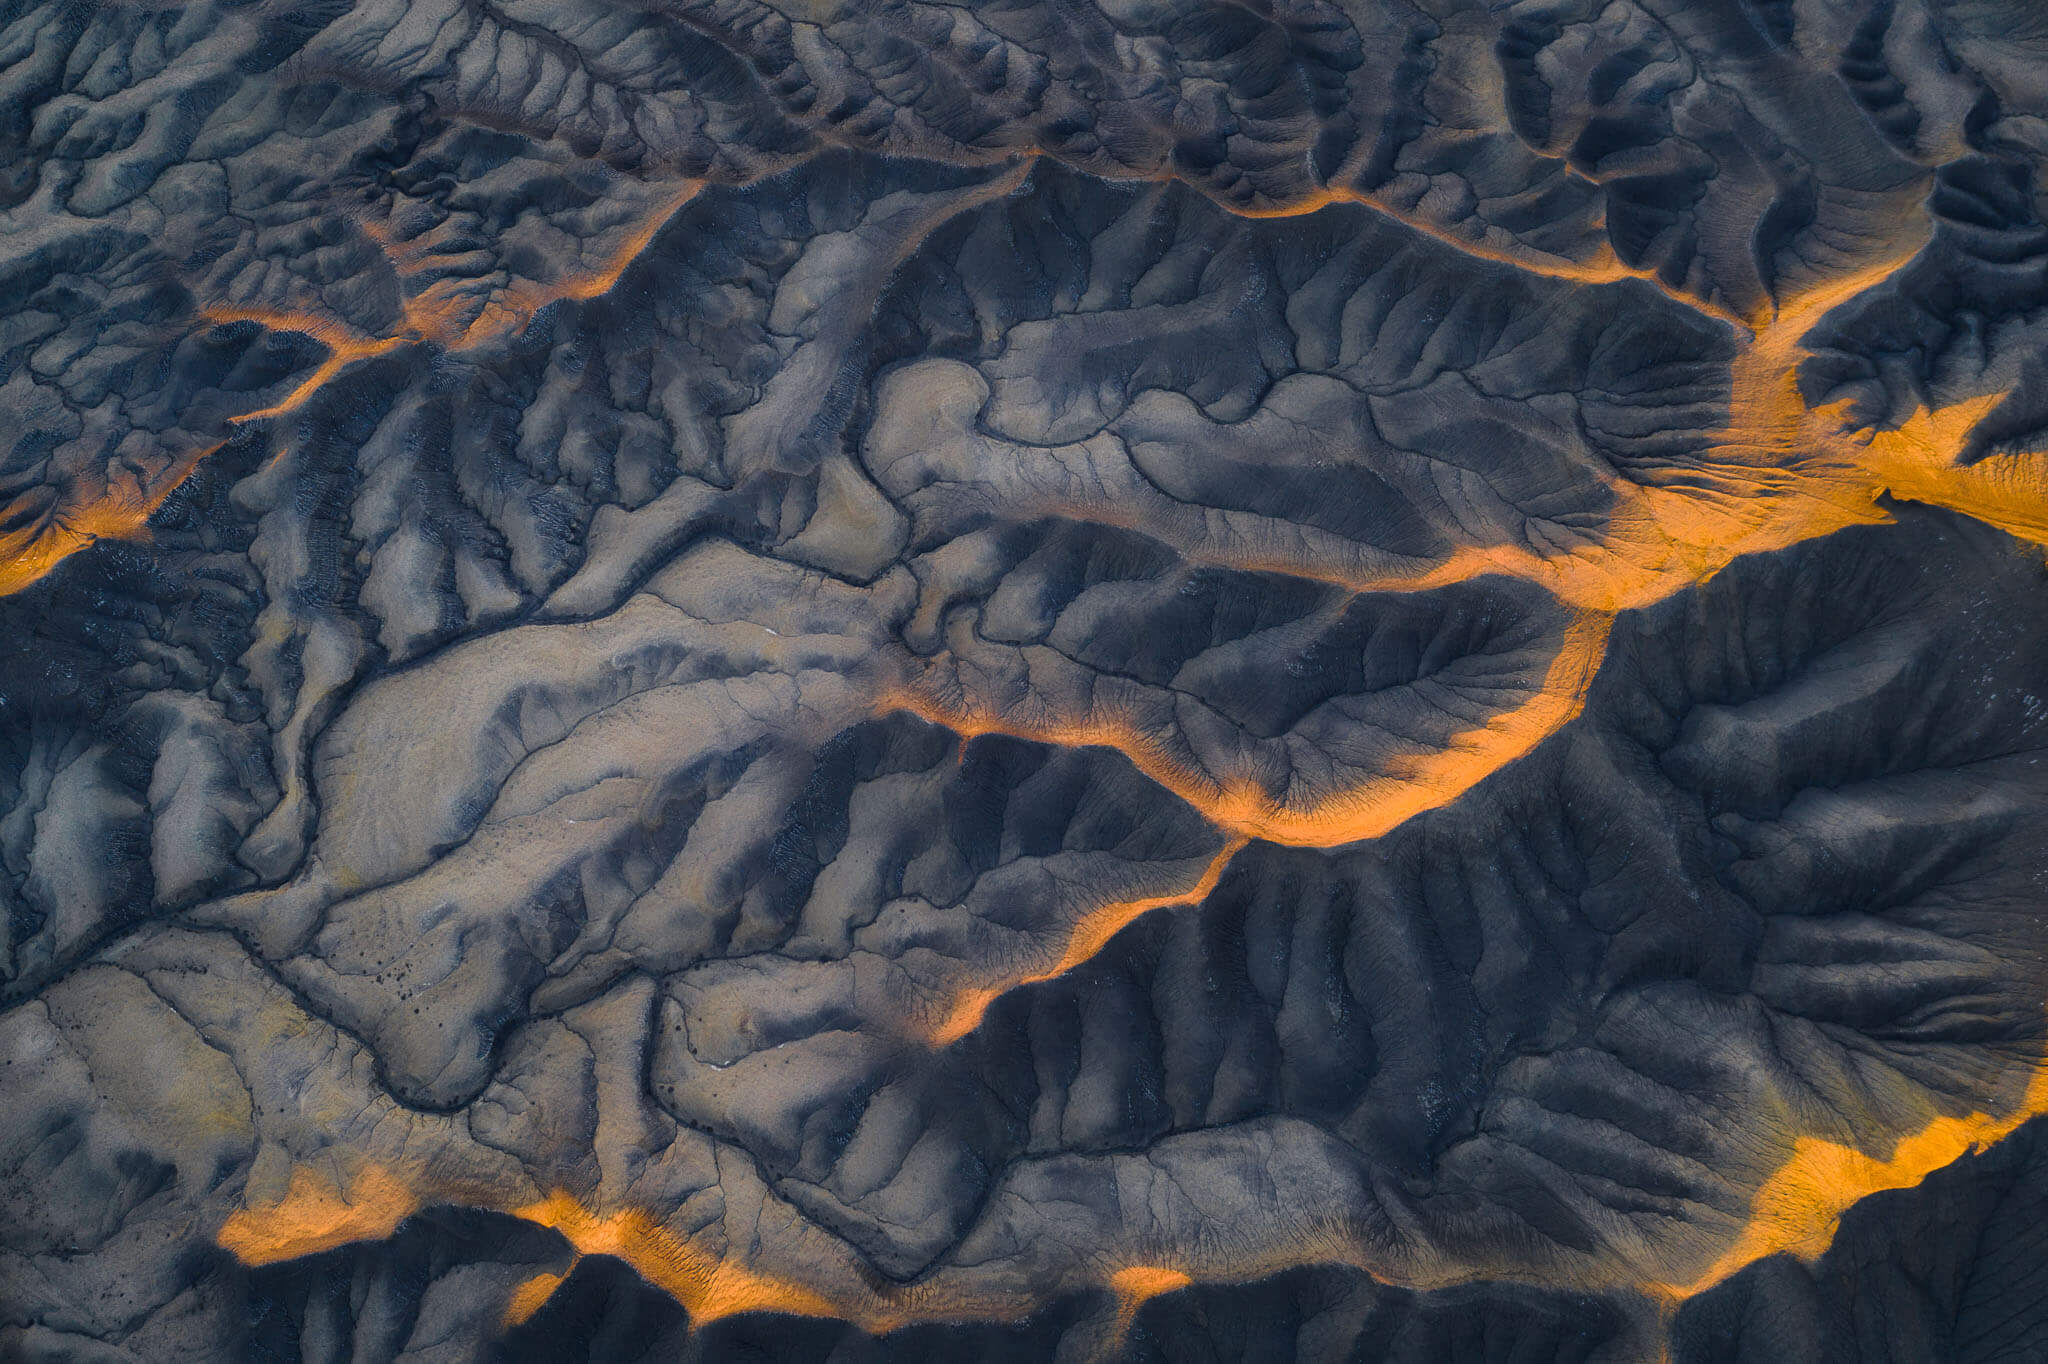 Abstract aerial photography in USA